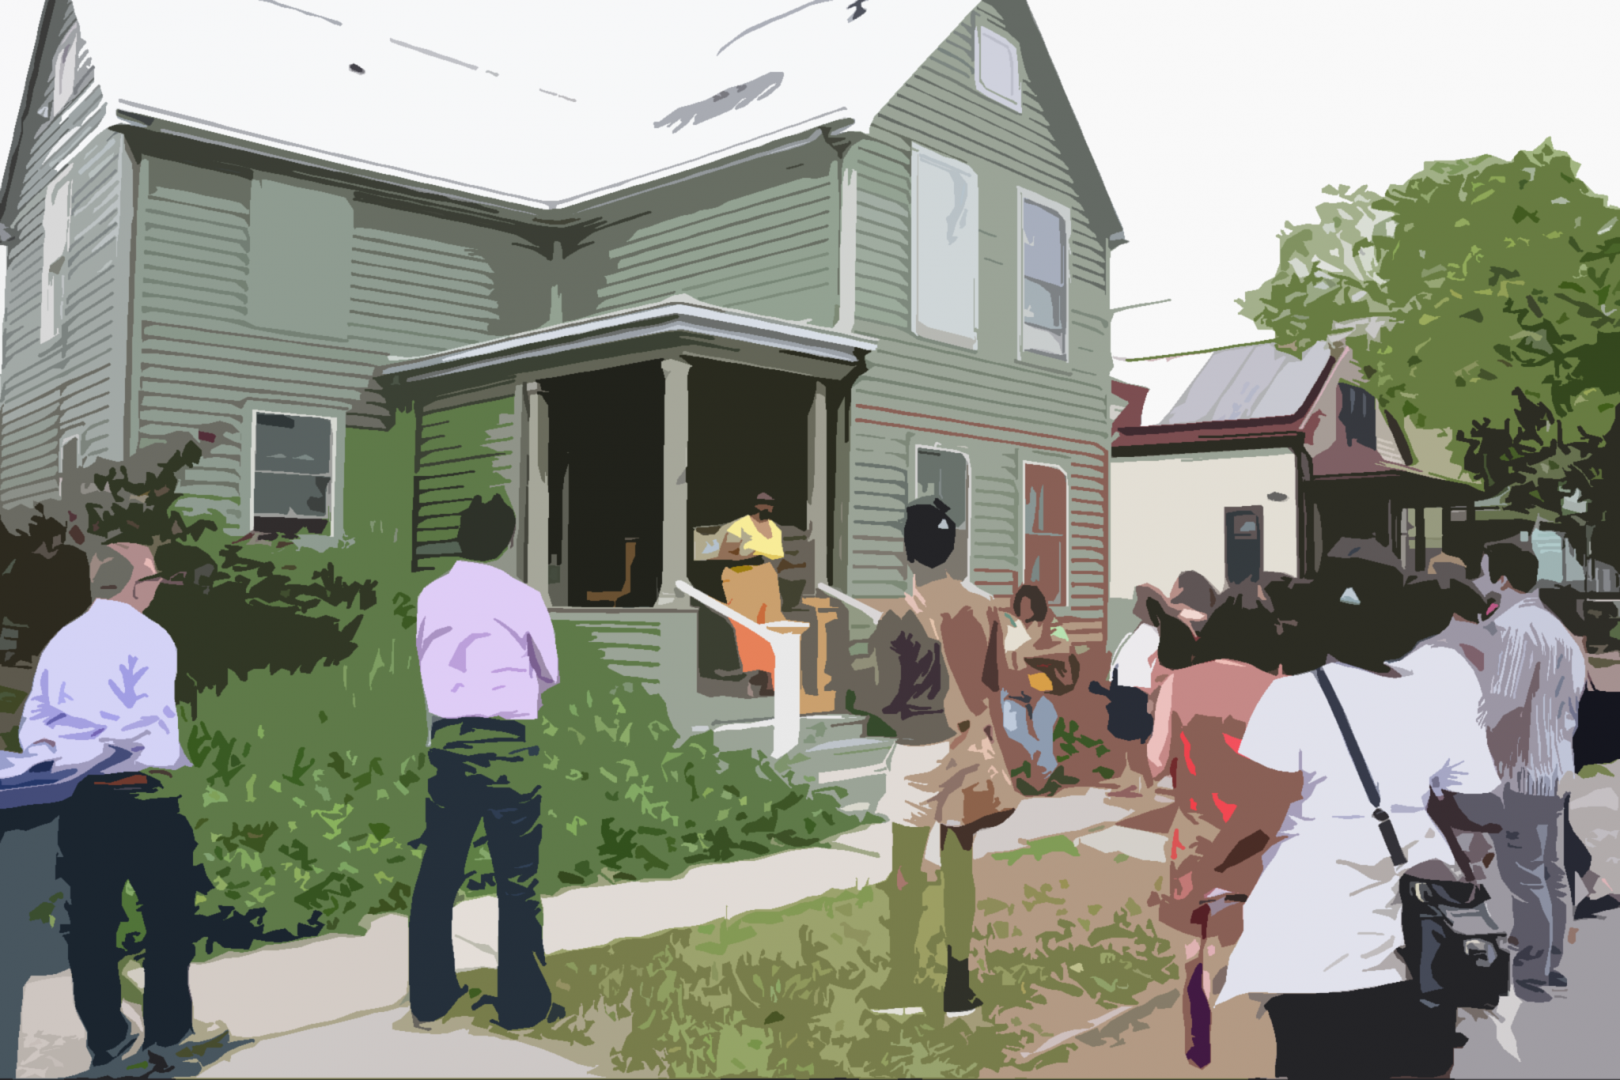 New PPG Report on Affordable Housing Strategies for Buffalo